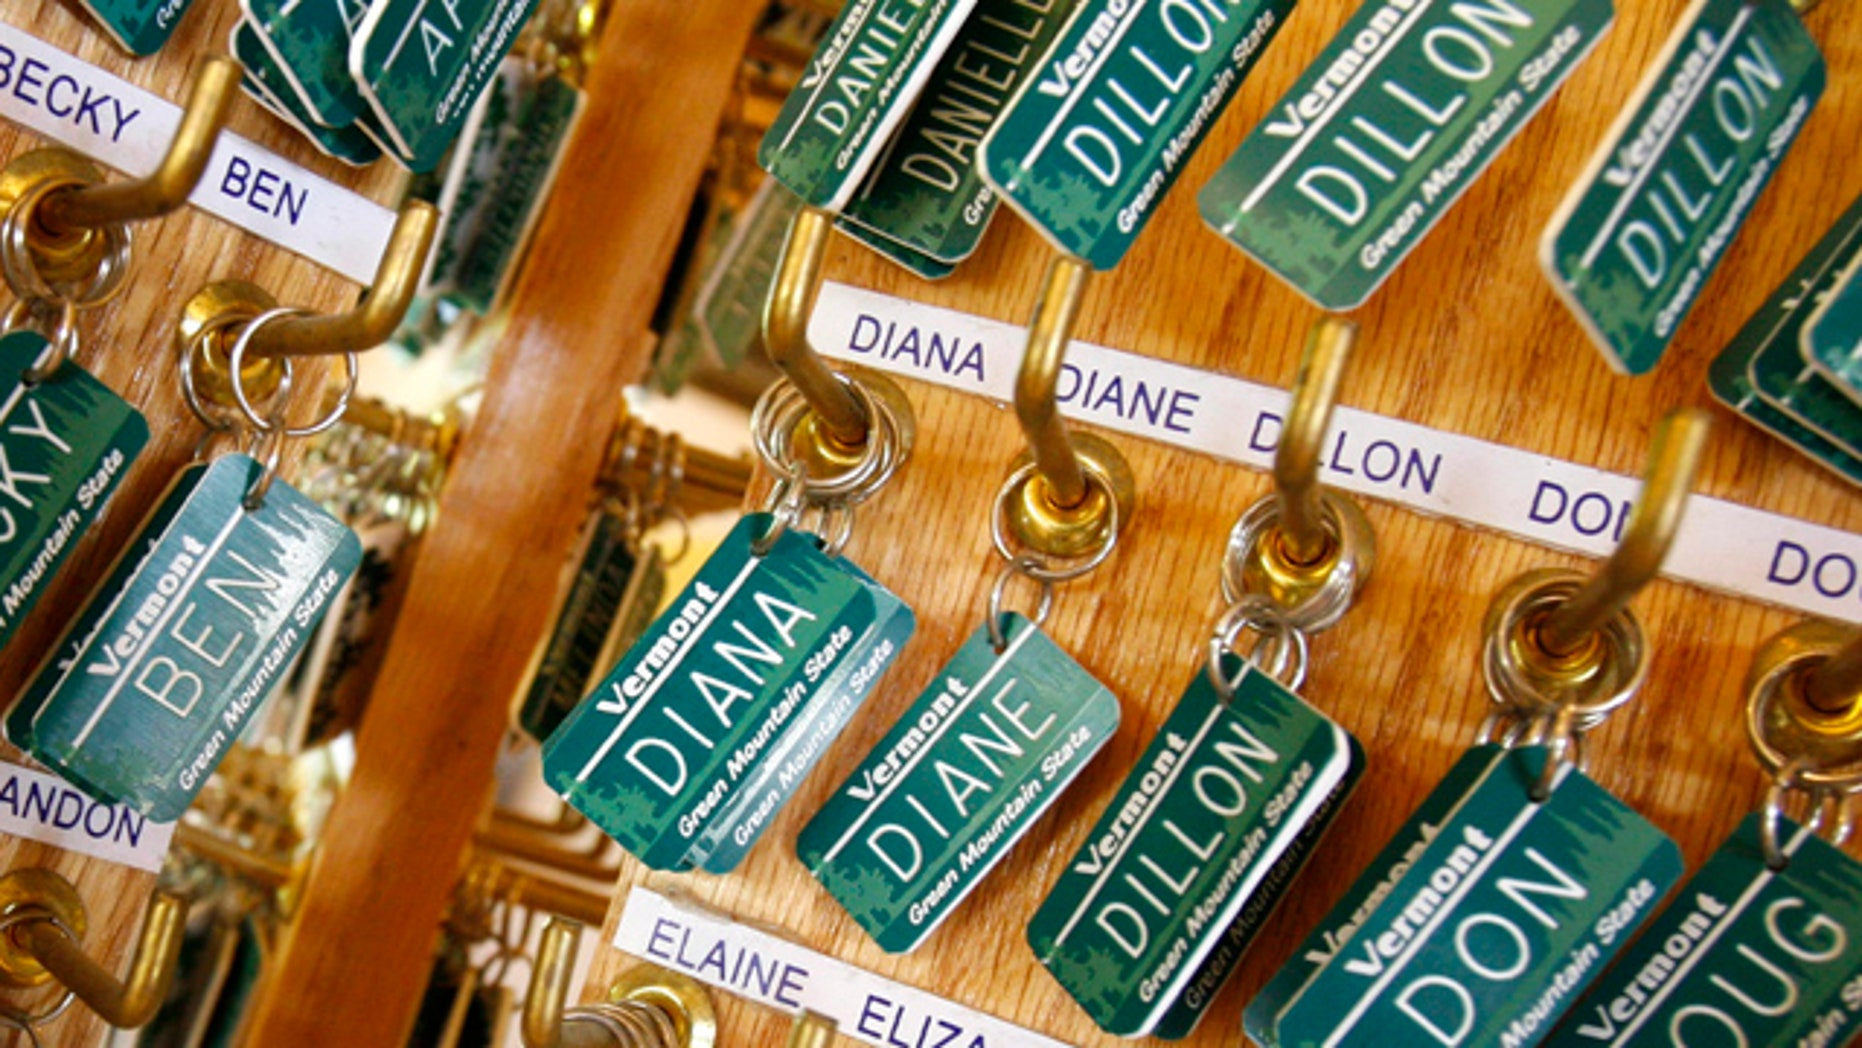 Luggage tags with children's names are displayed in East Montpelier, Vt.